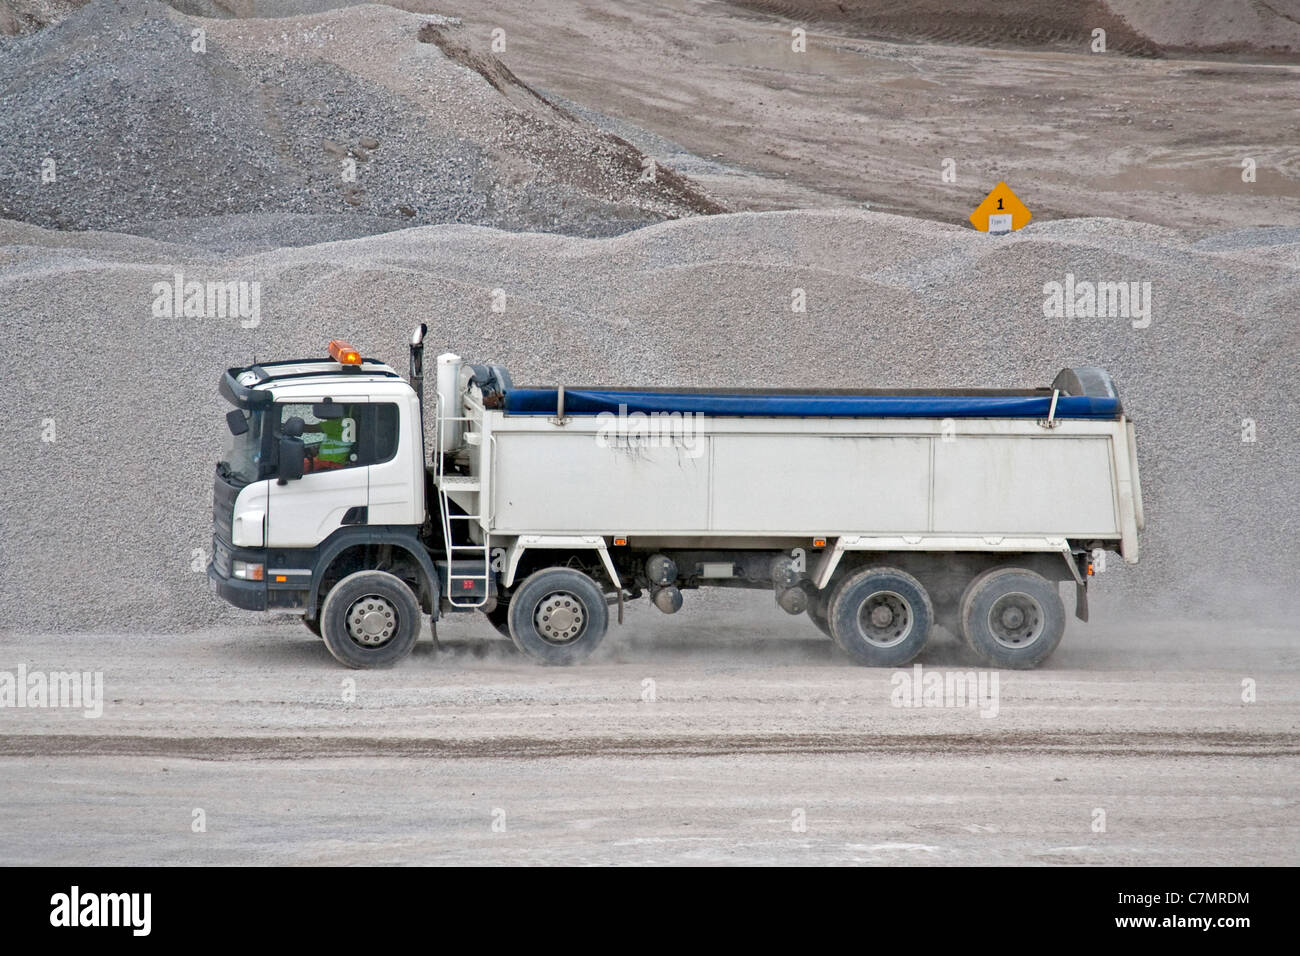 A white 8 wheel tipper truck going for a load of stone in a quarry - Stock Image